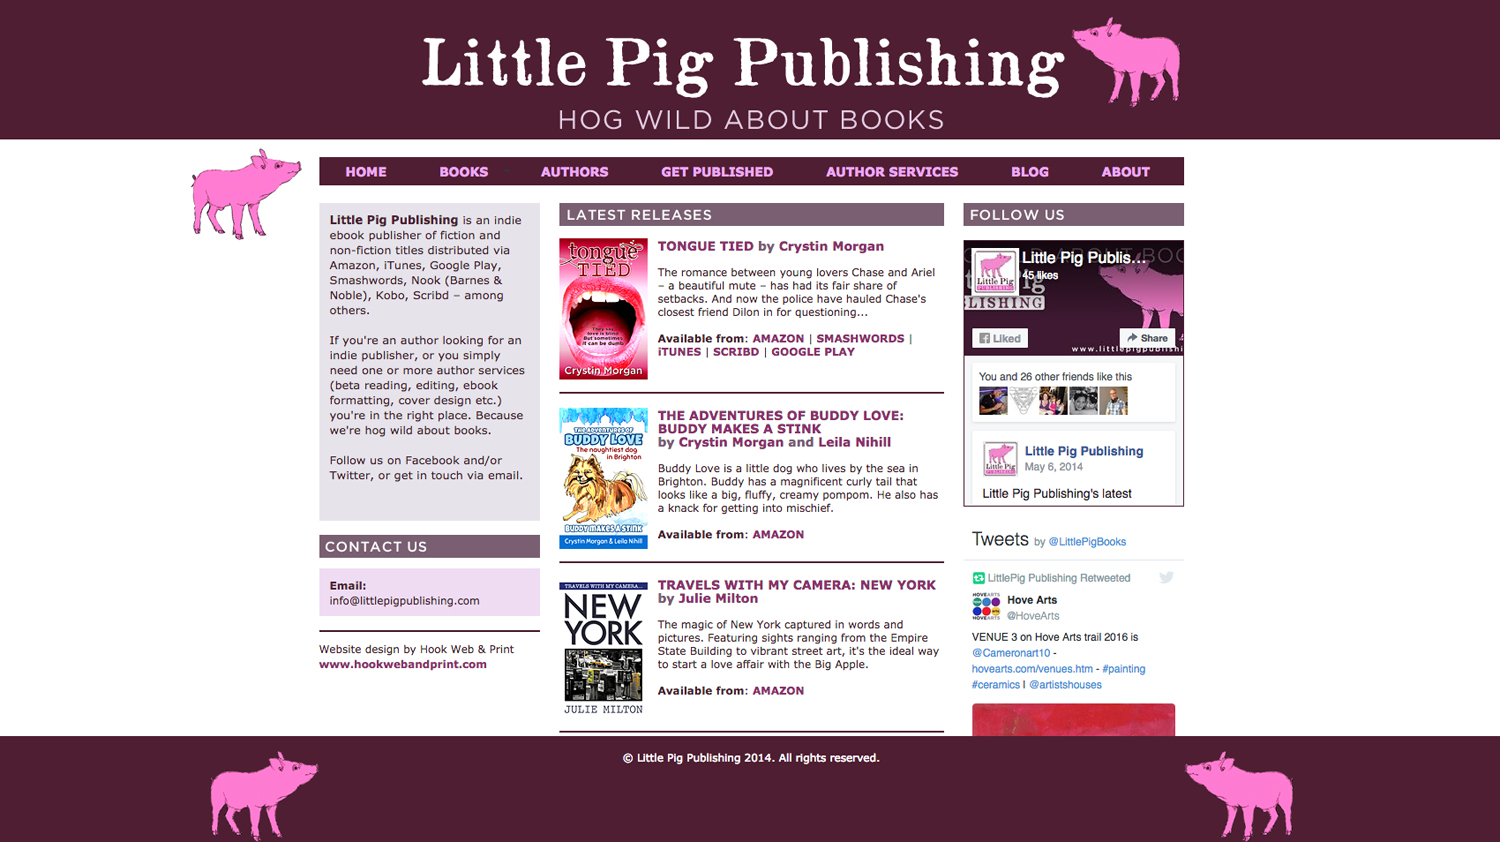 Little Pig Publishing website - designed by Hook Web & Print